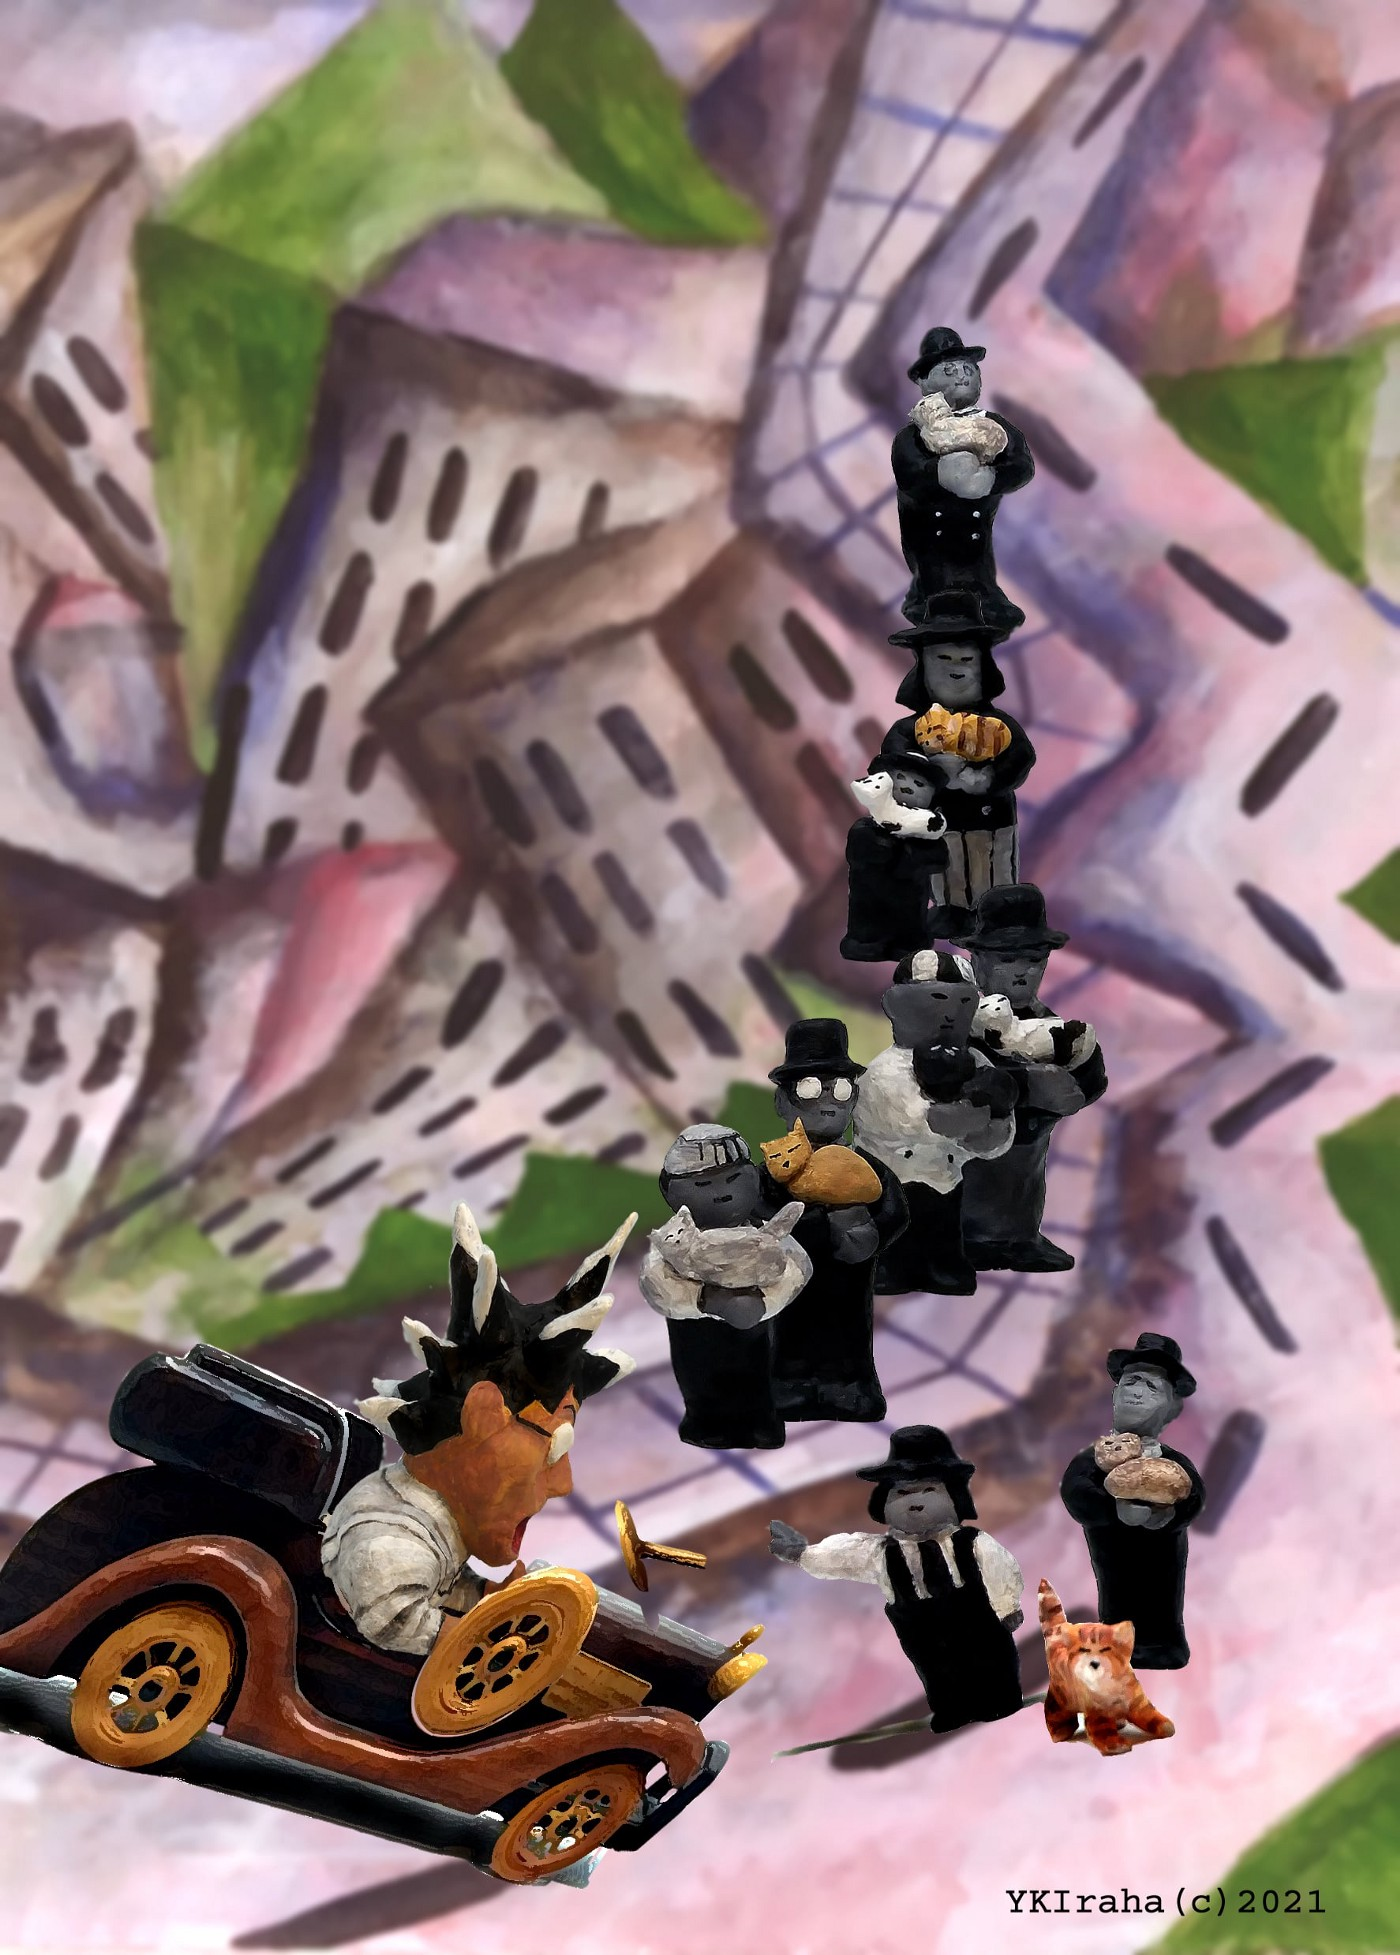 Yukio Kevin Iraha's 3d comic strip a car almost to run over a cat with nine ghosts each holding cats.